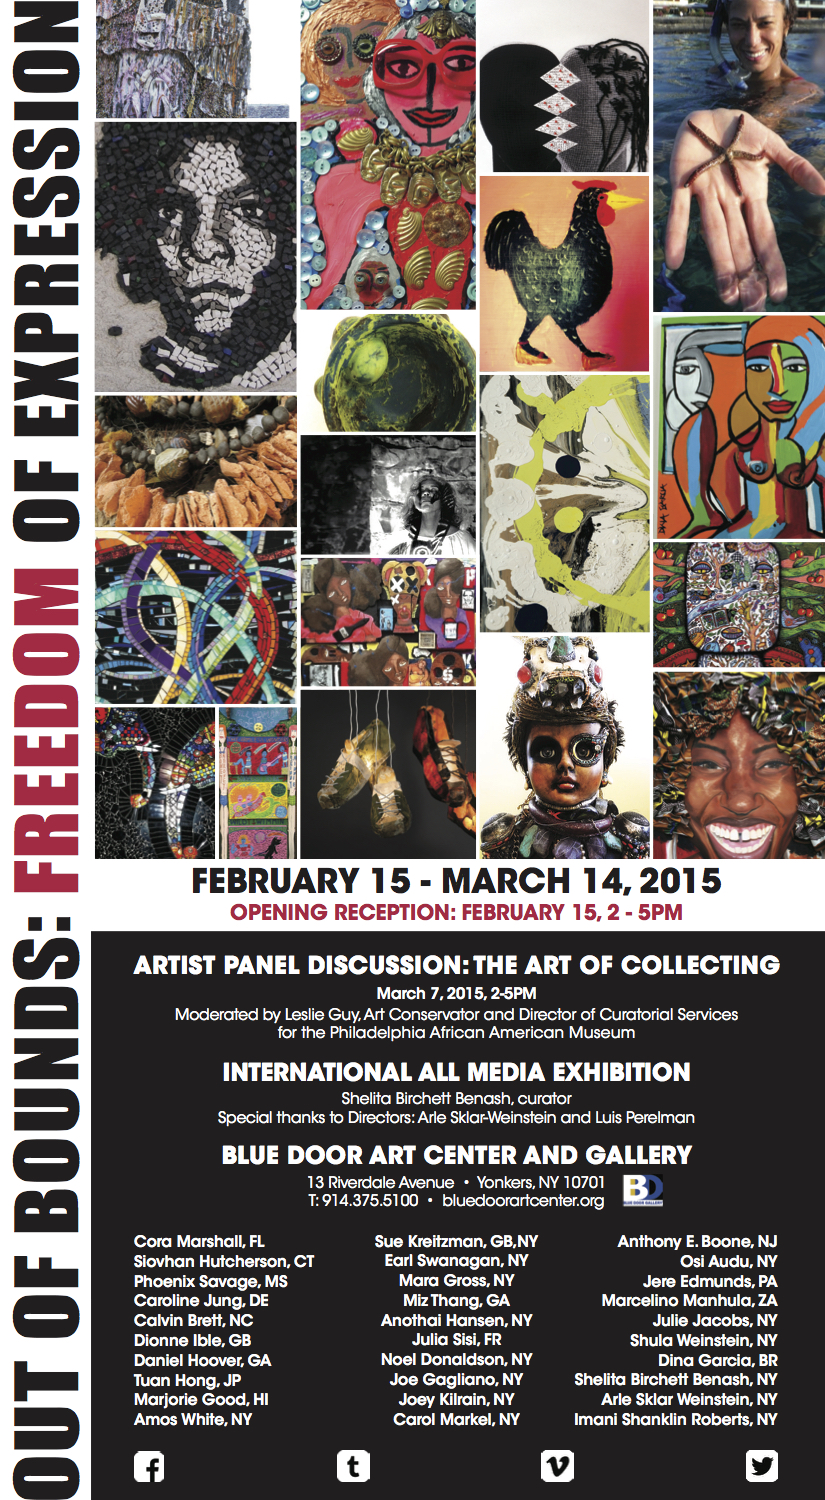 OUT OF BOUNDS: FREEDOM OF EXPRESSION, ALL MEDIA INTERNATIONAL EXHIBITION CURATED BY SHELITA BIRCHETT BENASH, 2015